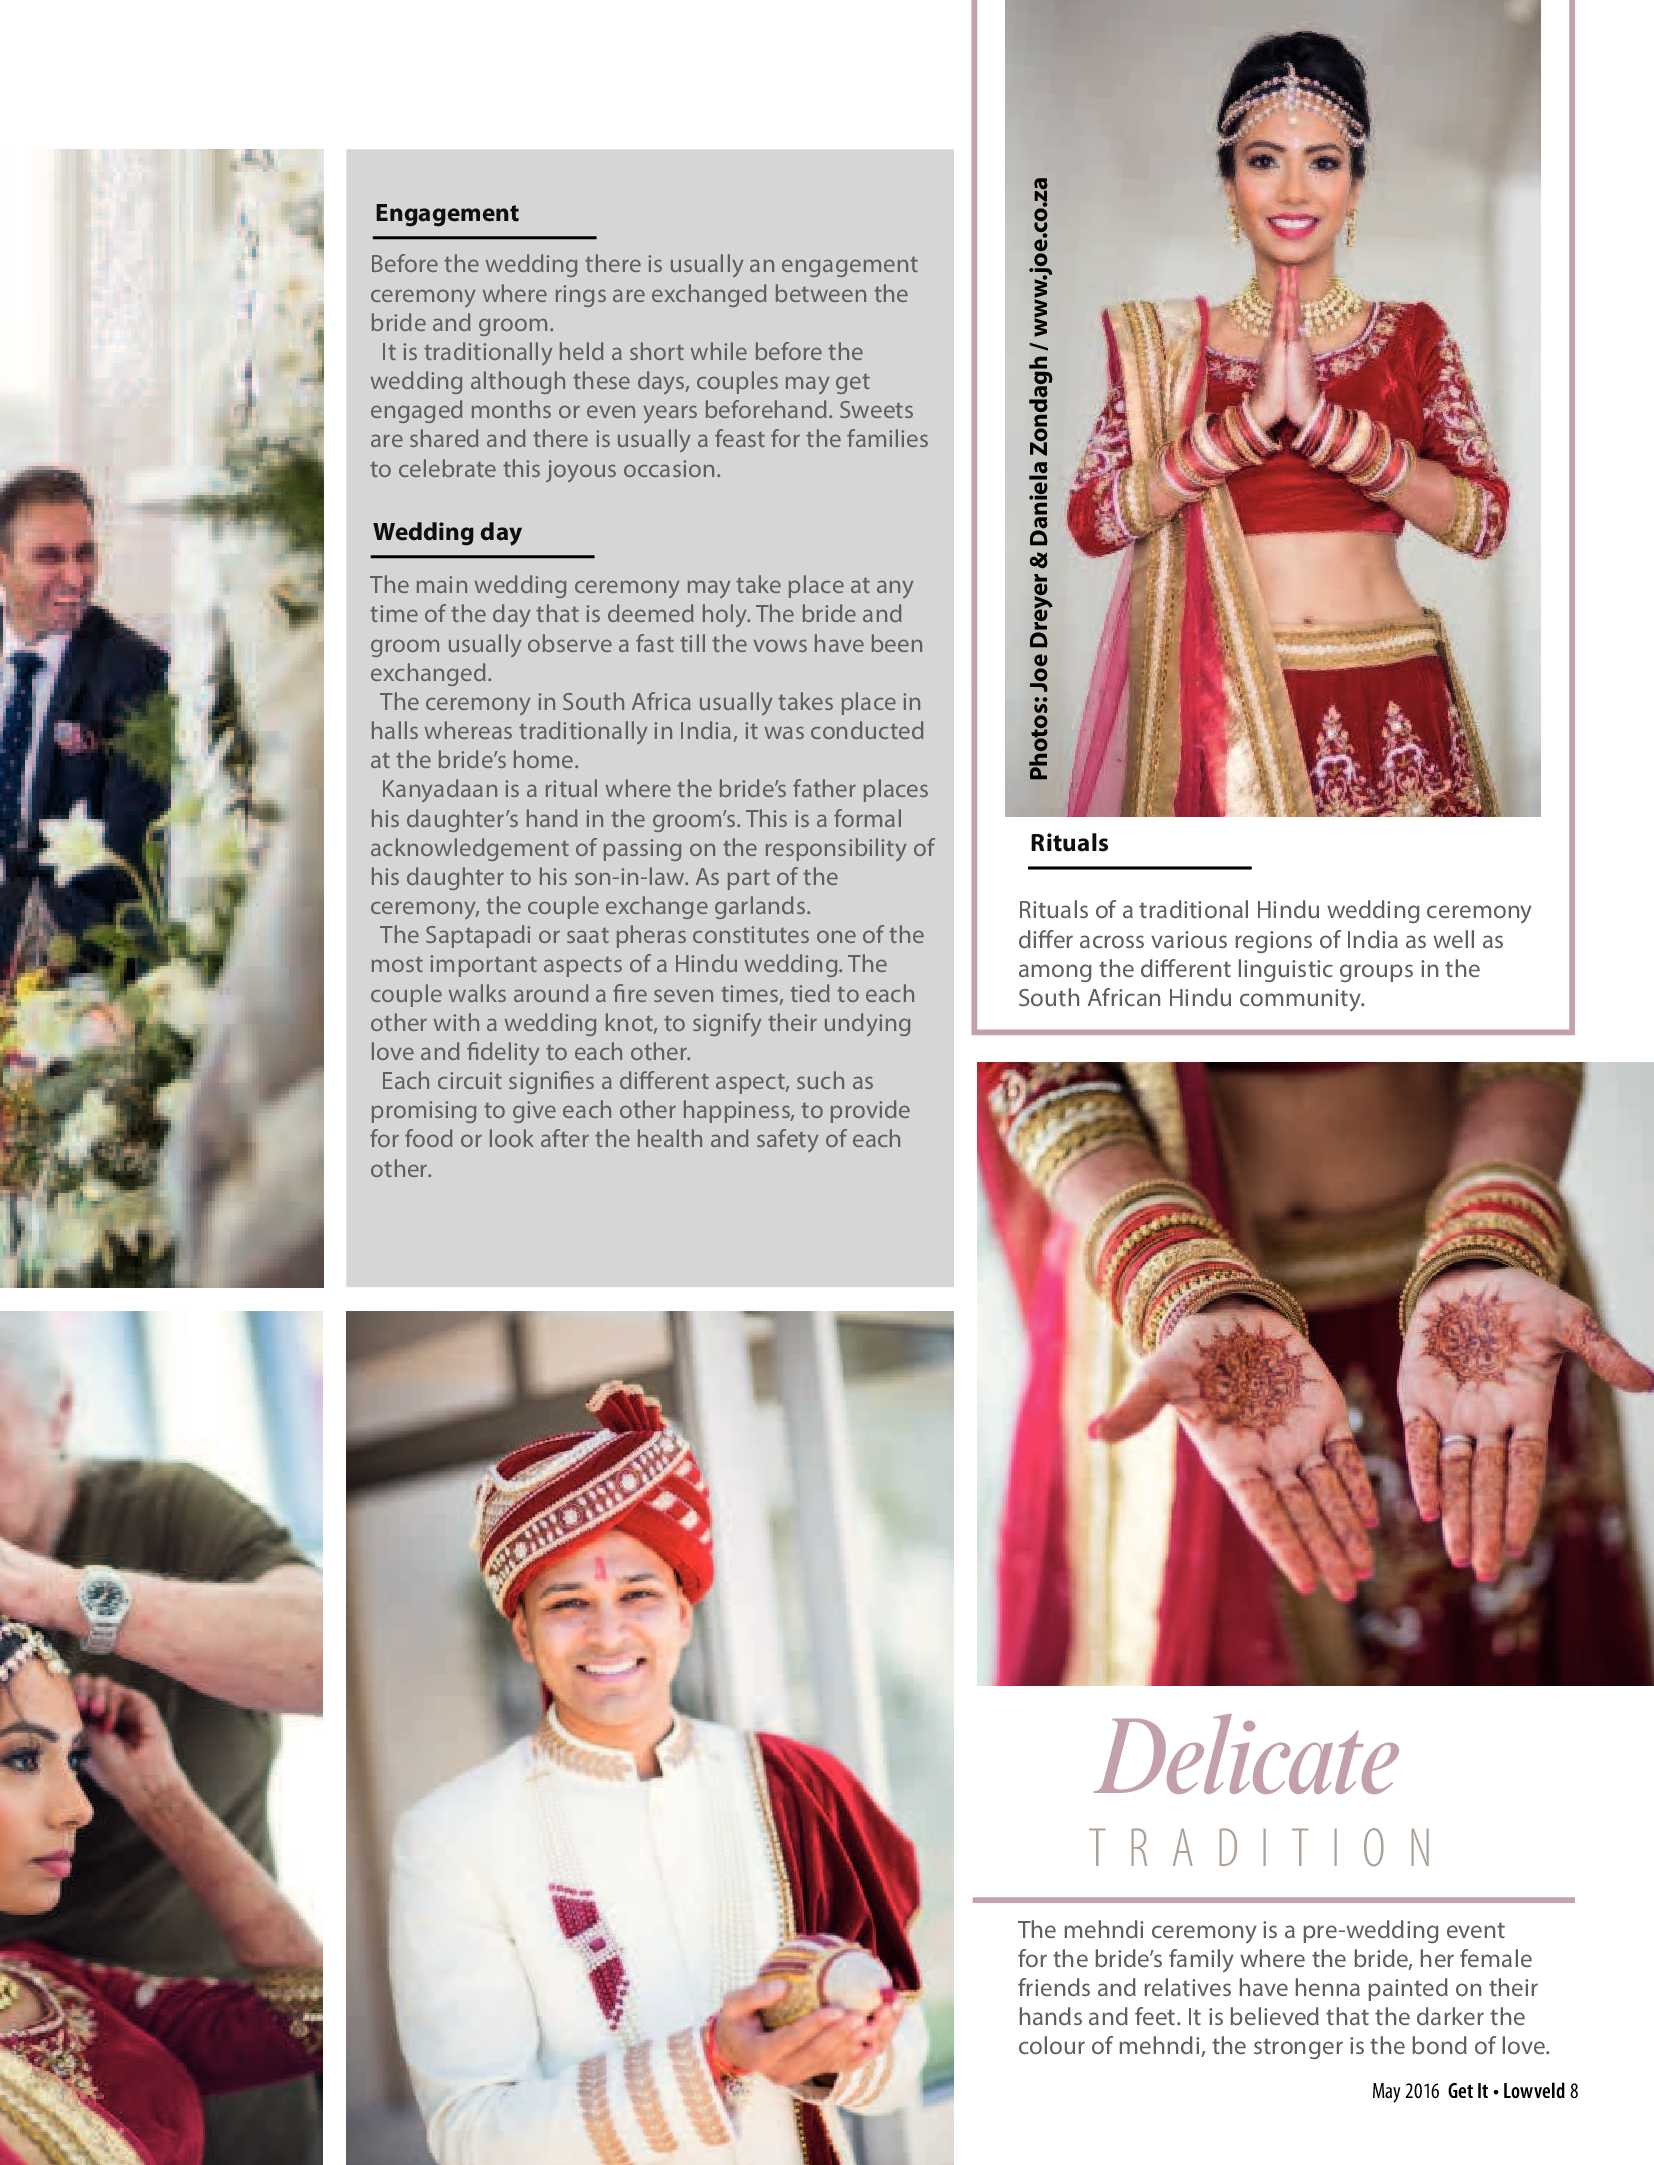 get-lowveld-bridal-supplement-2016-epapers-page-9